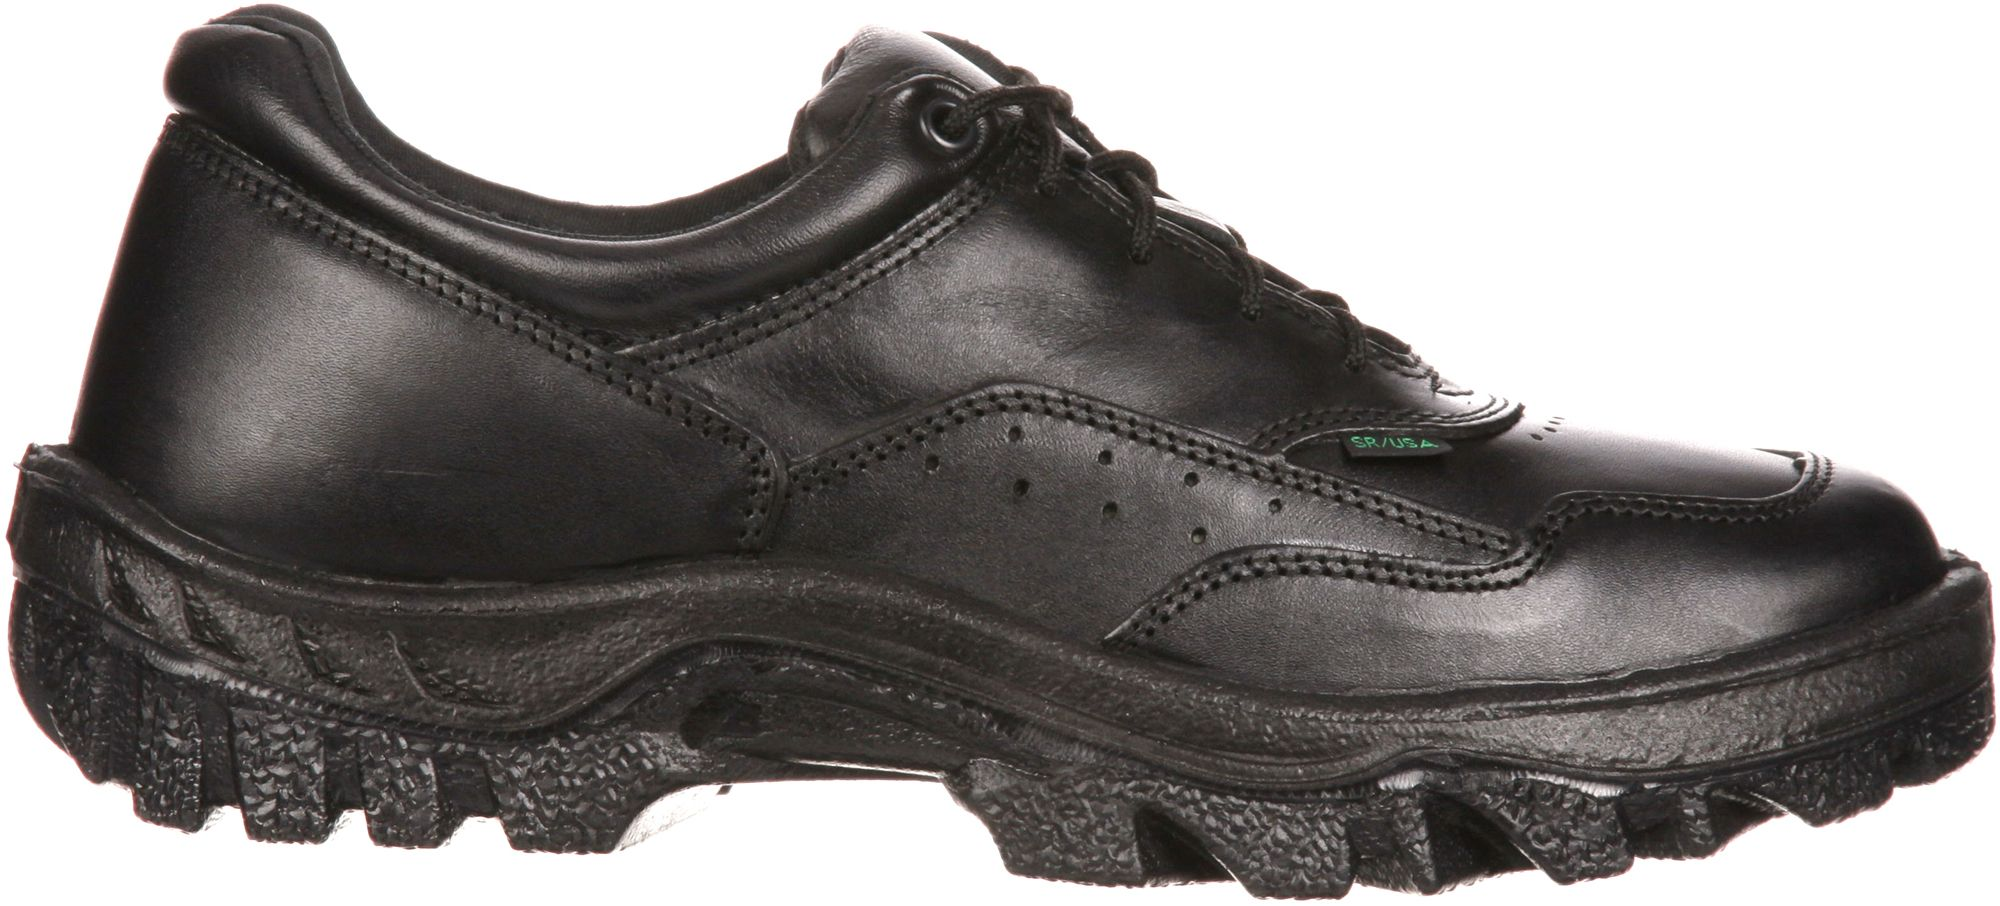 Rocky Men's Oxford TMC Postal-Approved Work Shoes. 0:00. noImageFound ???